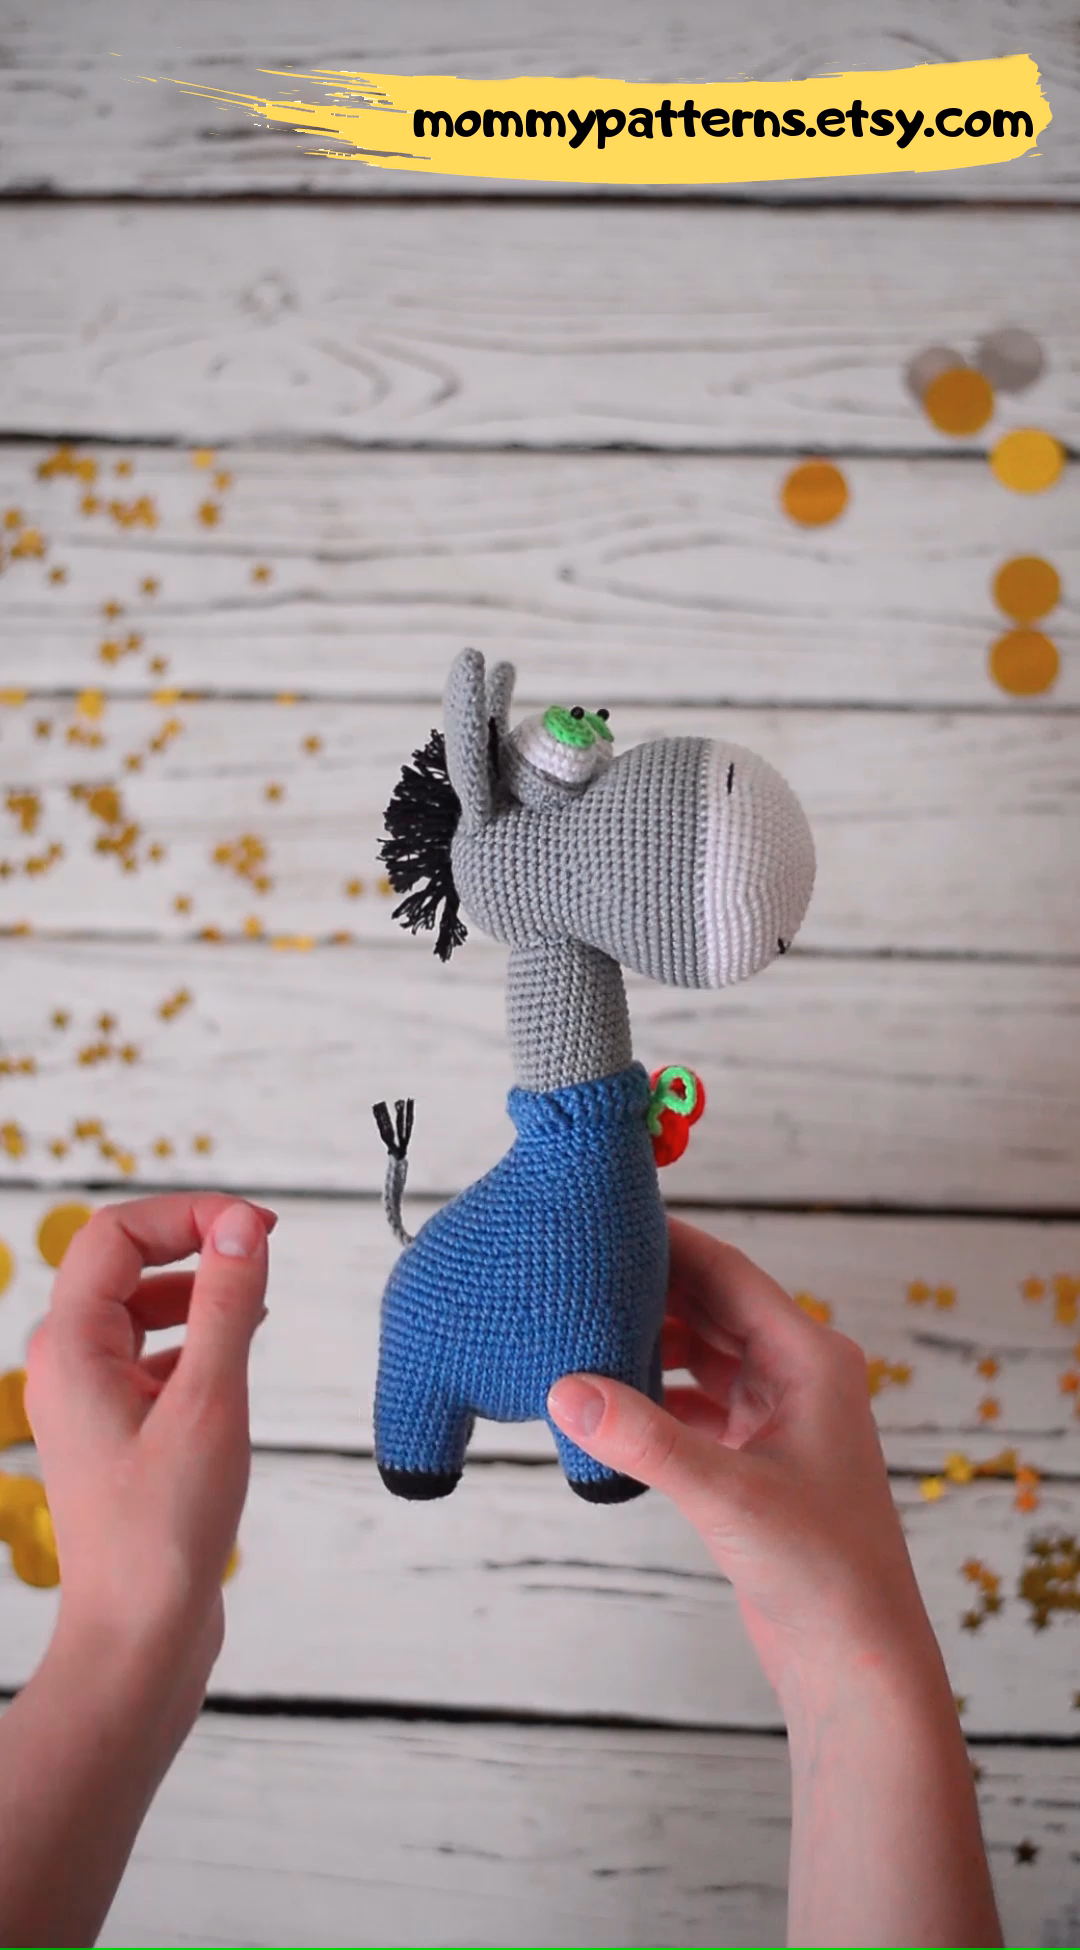 Photo of Crochet pattern Donkey / Amigurumi pattern / Crochet pattern toy Donkey